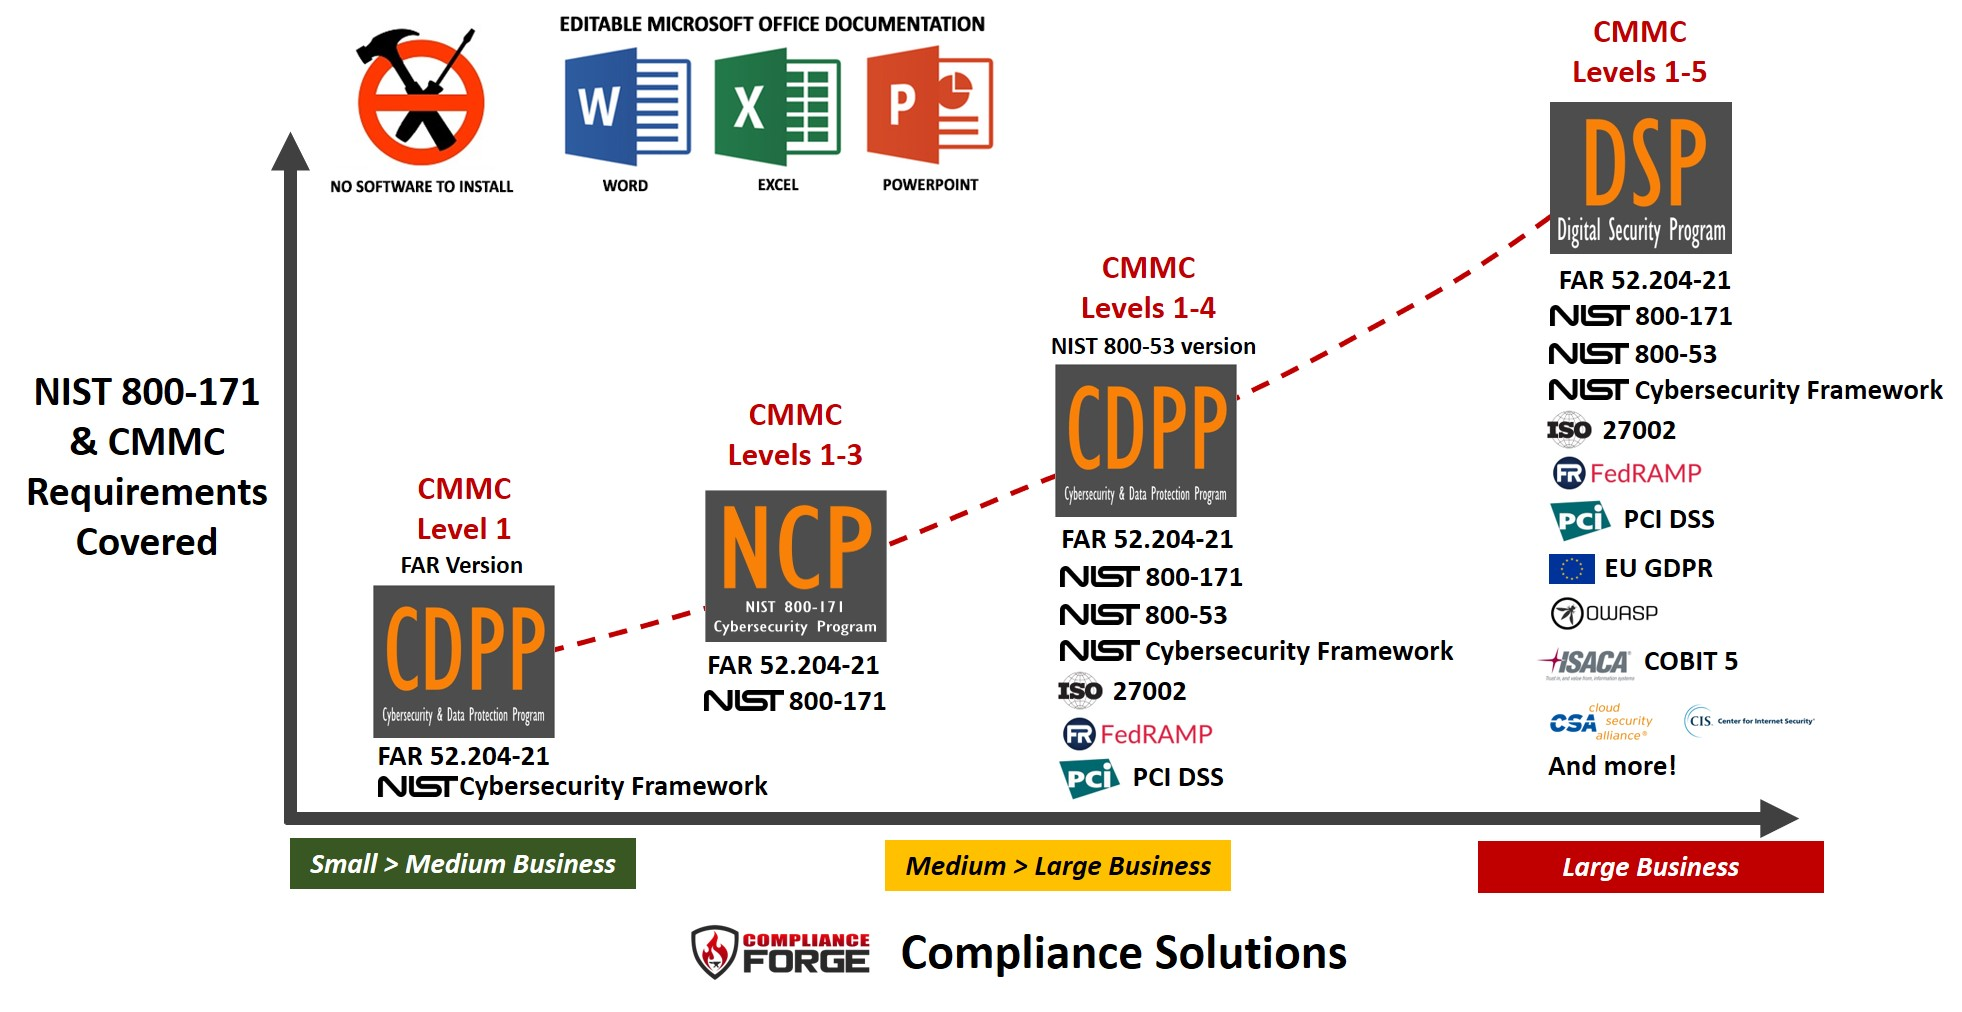 2020.1-complianceforge-nist-sp-800-171-cmmc-compliance-documentation-policies-standards-procedures.jpg